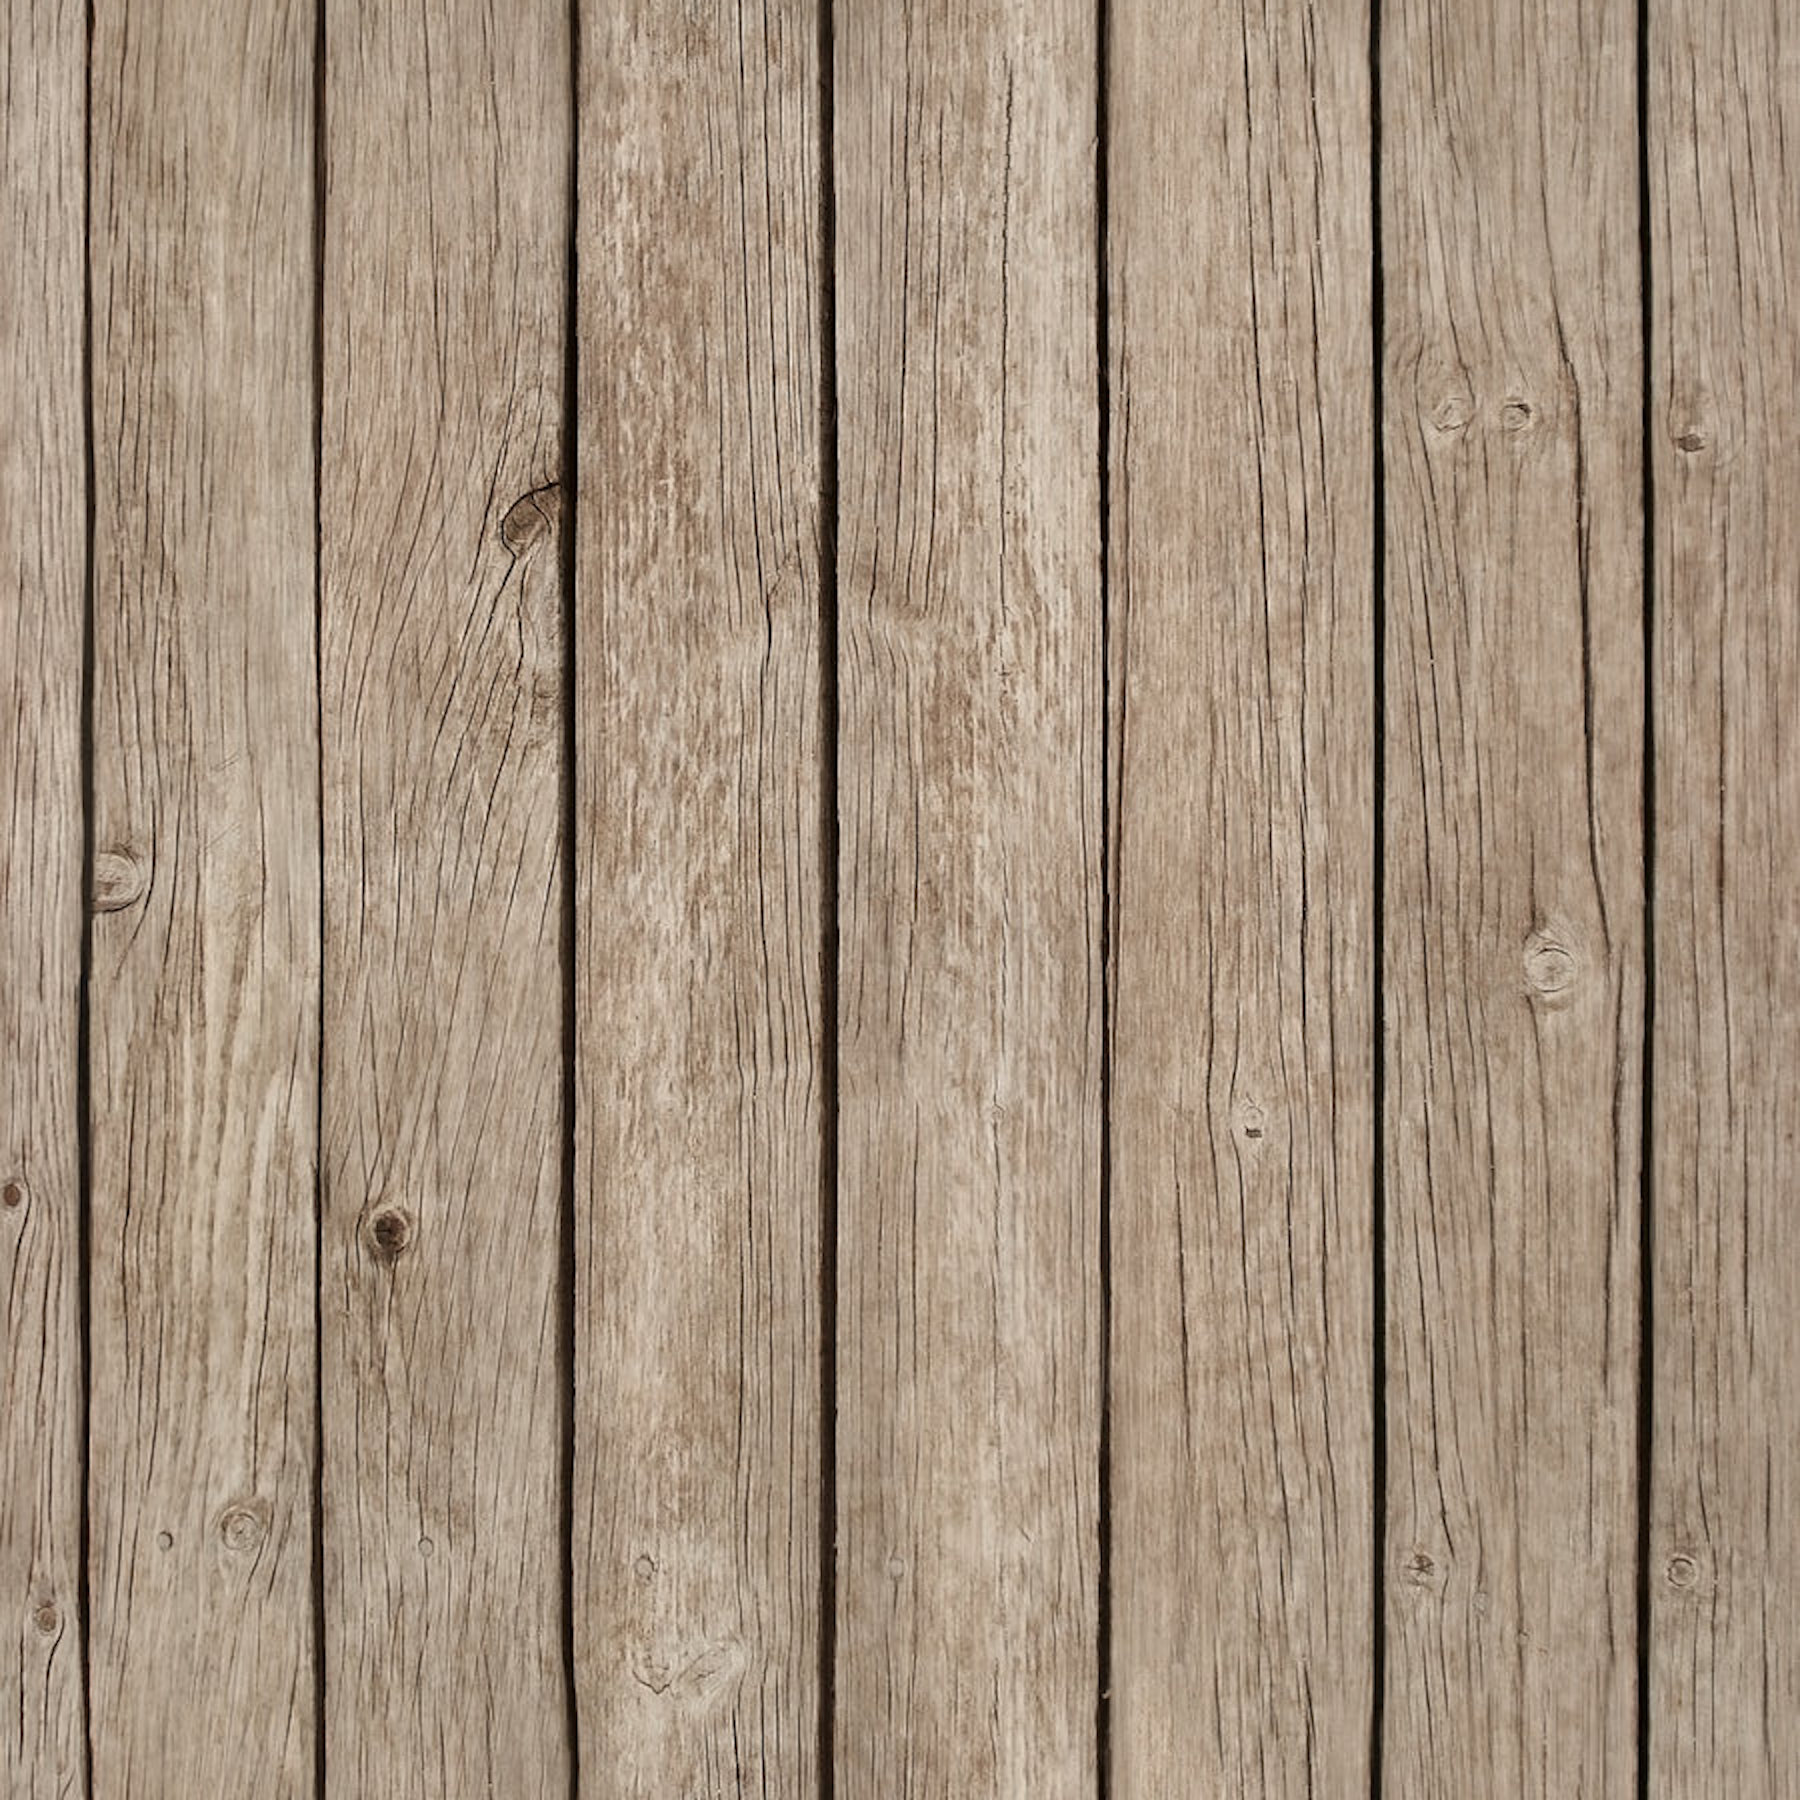 tileable_wood_texture.jpg - 636.74 kB